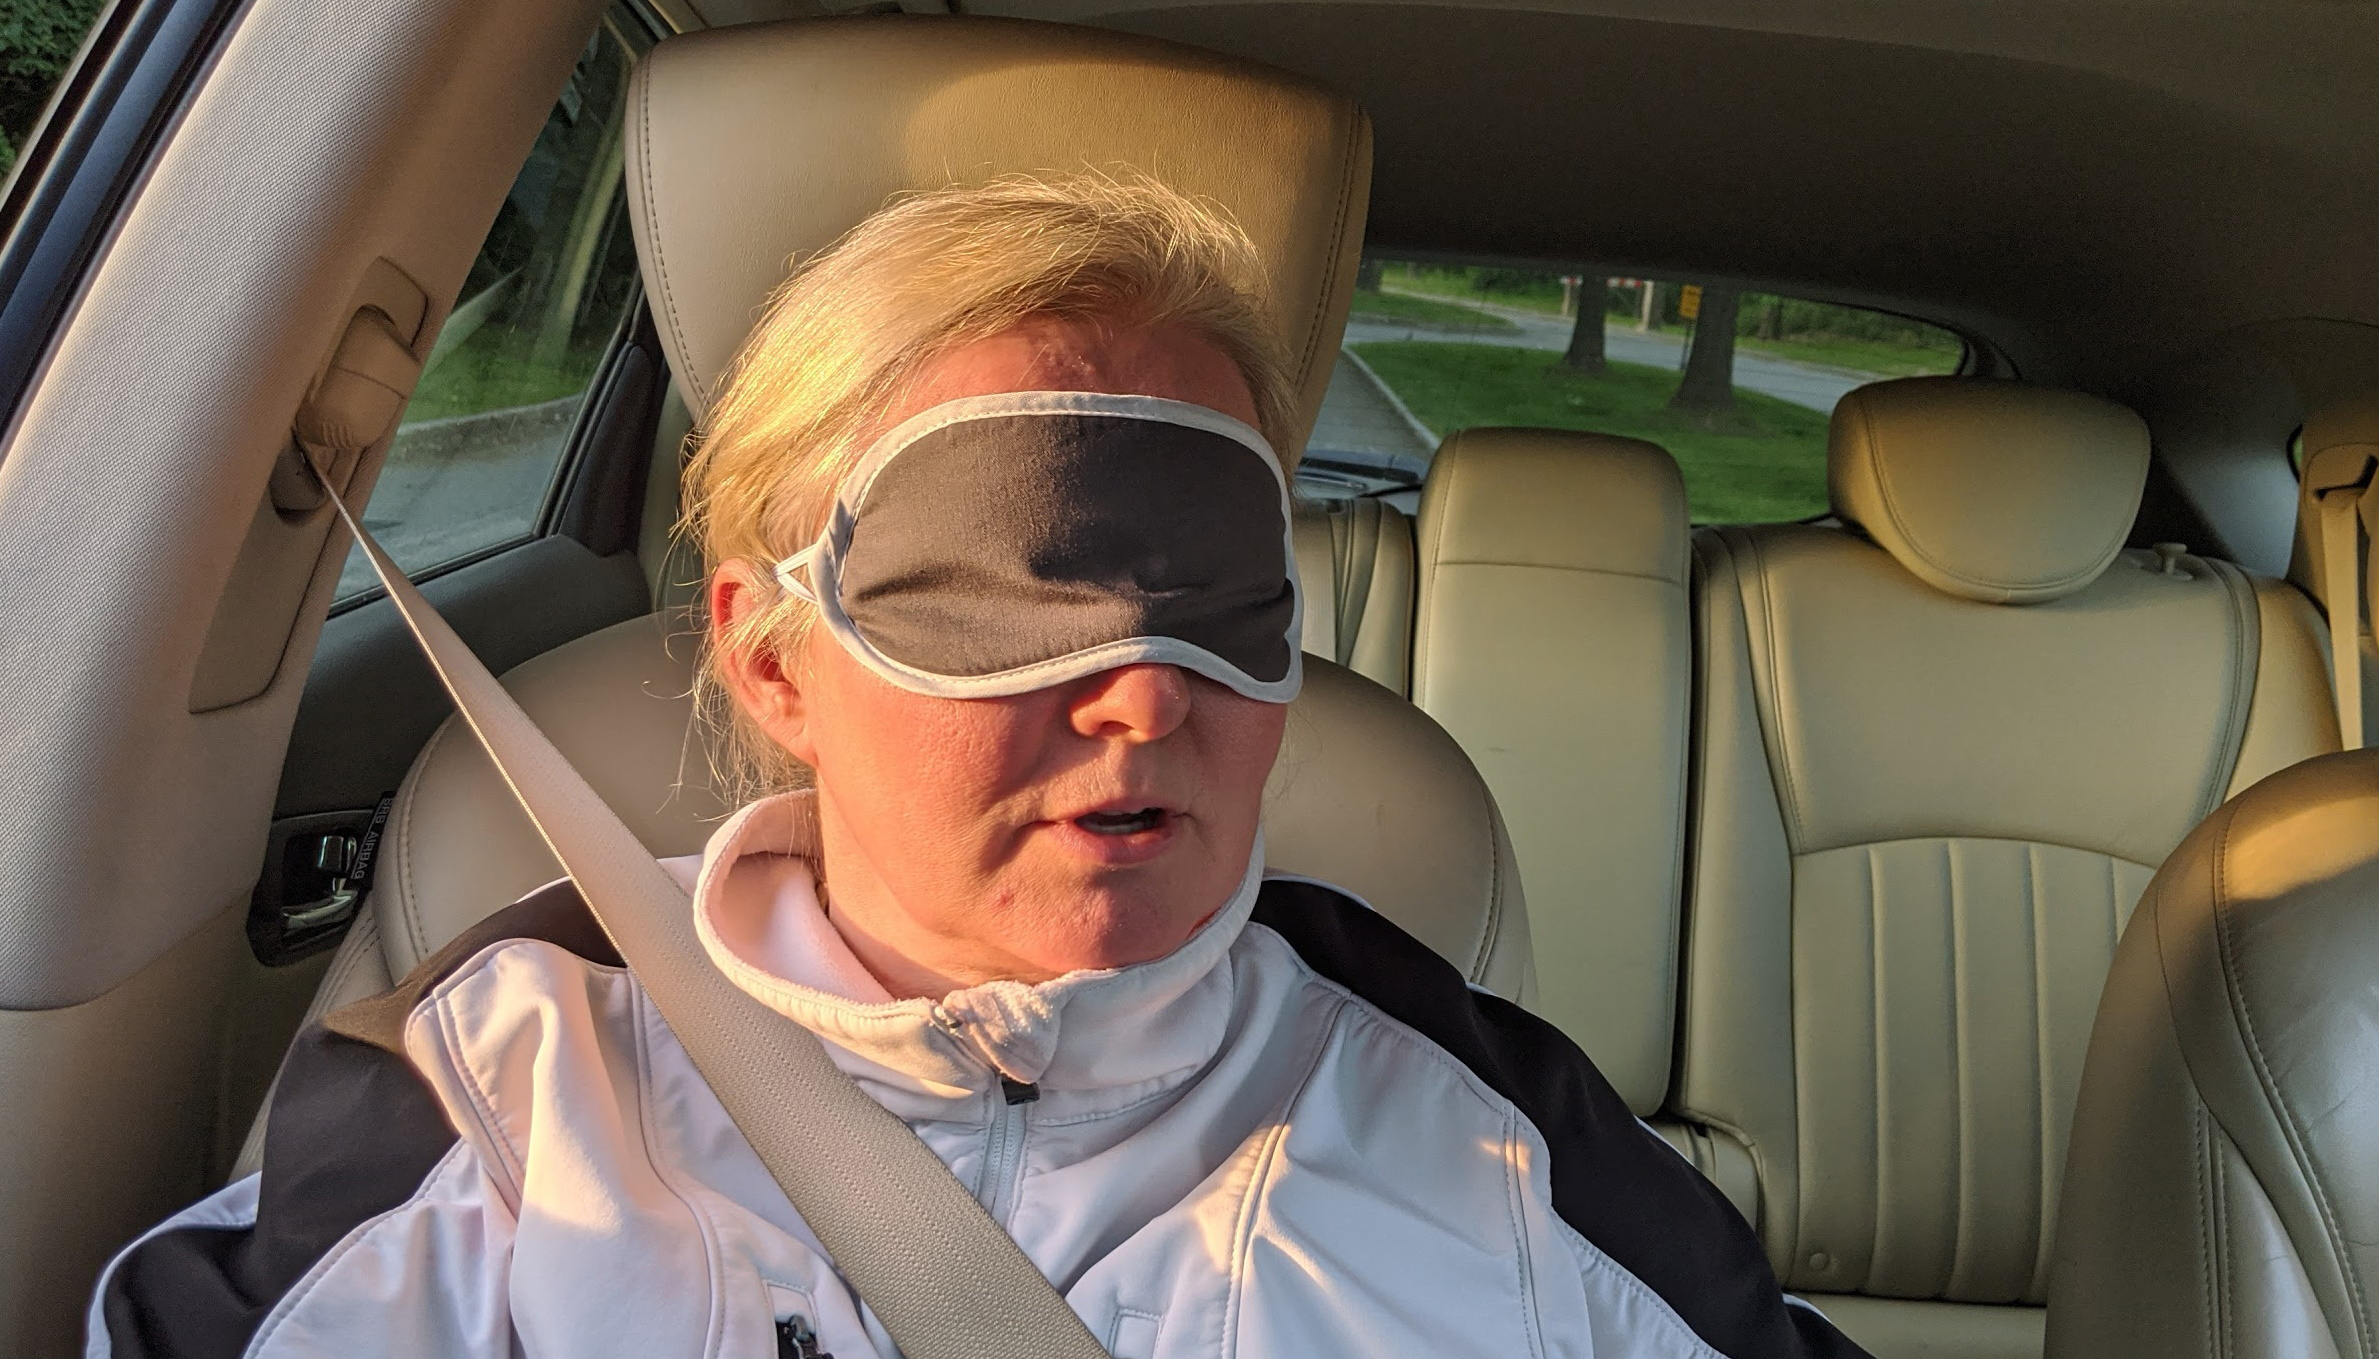 dreyev | Does a blindfolded passenger make you a safer driver?